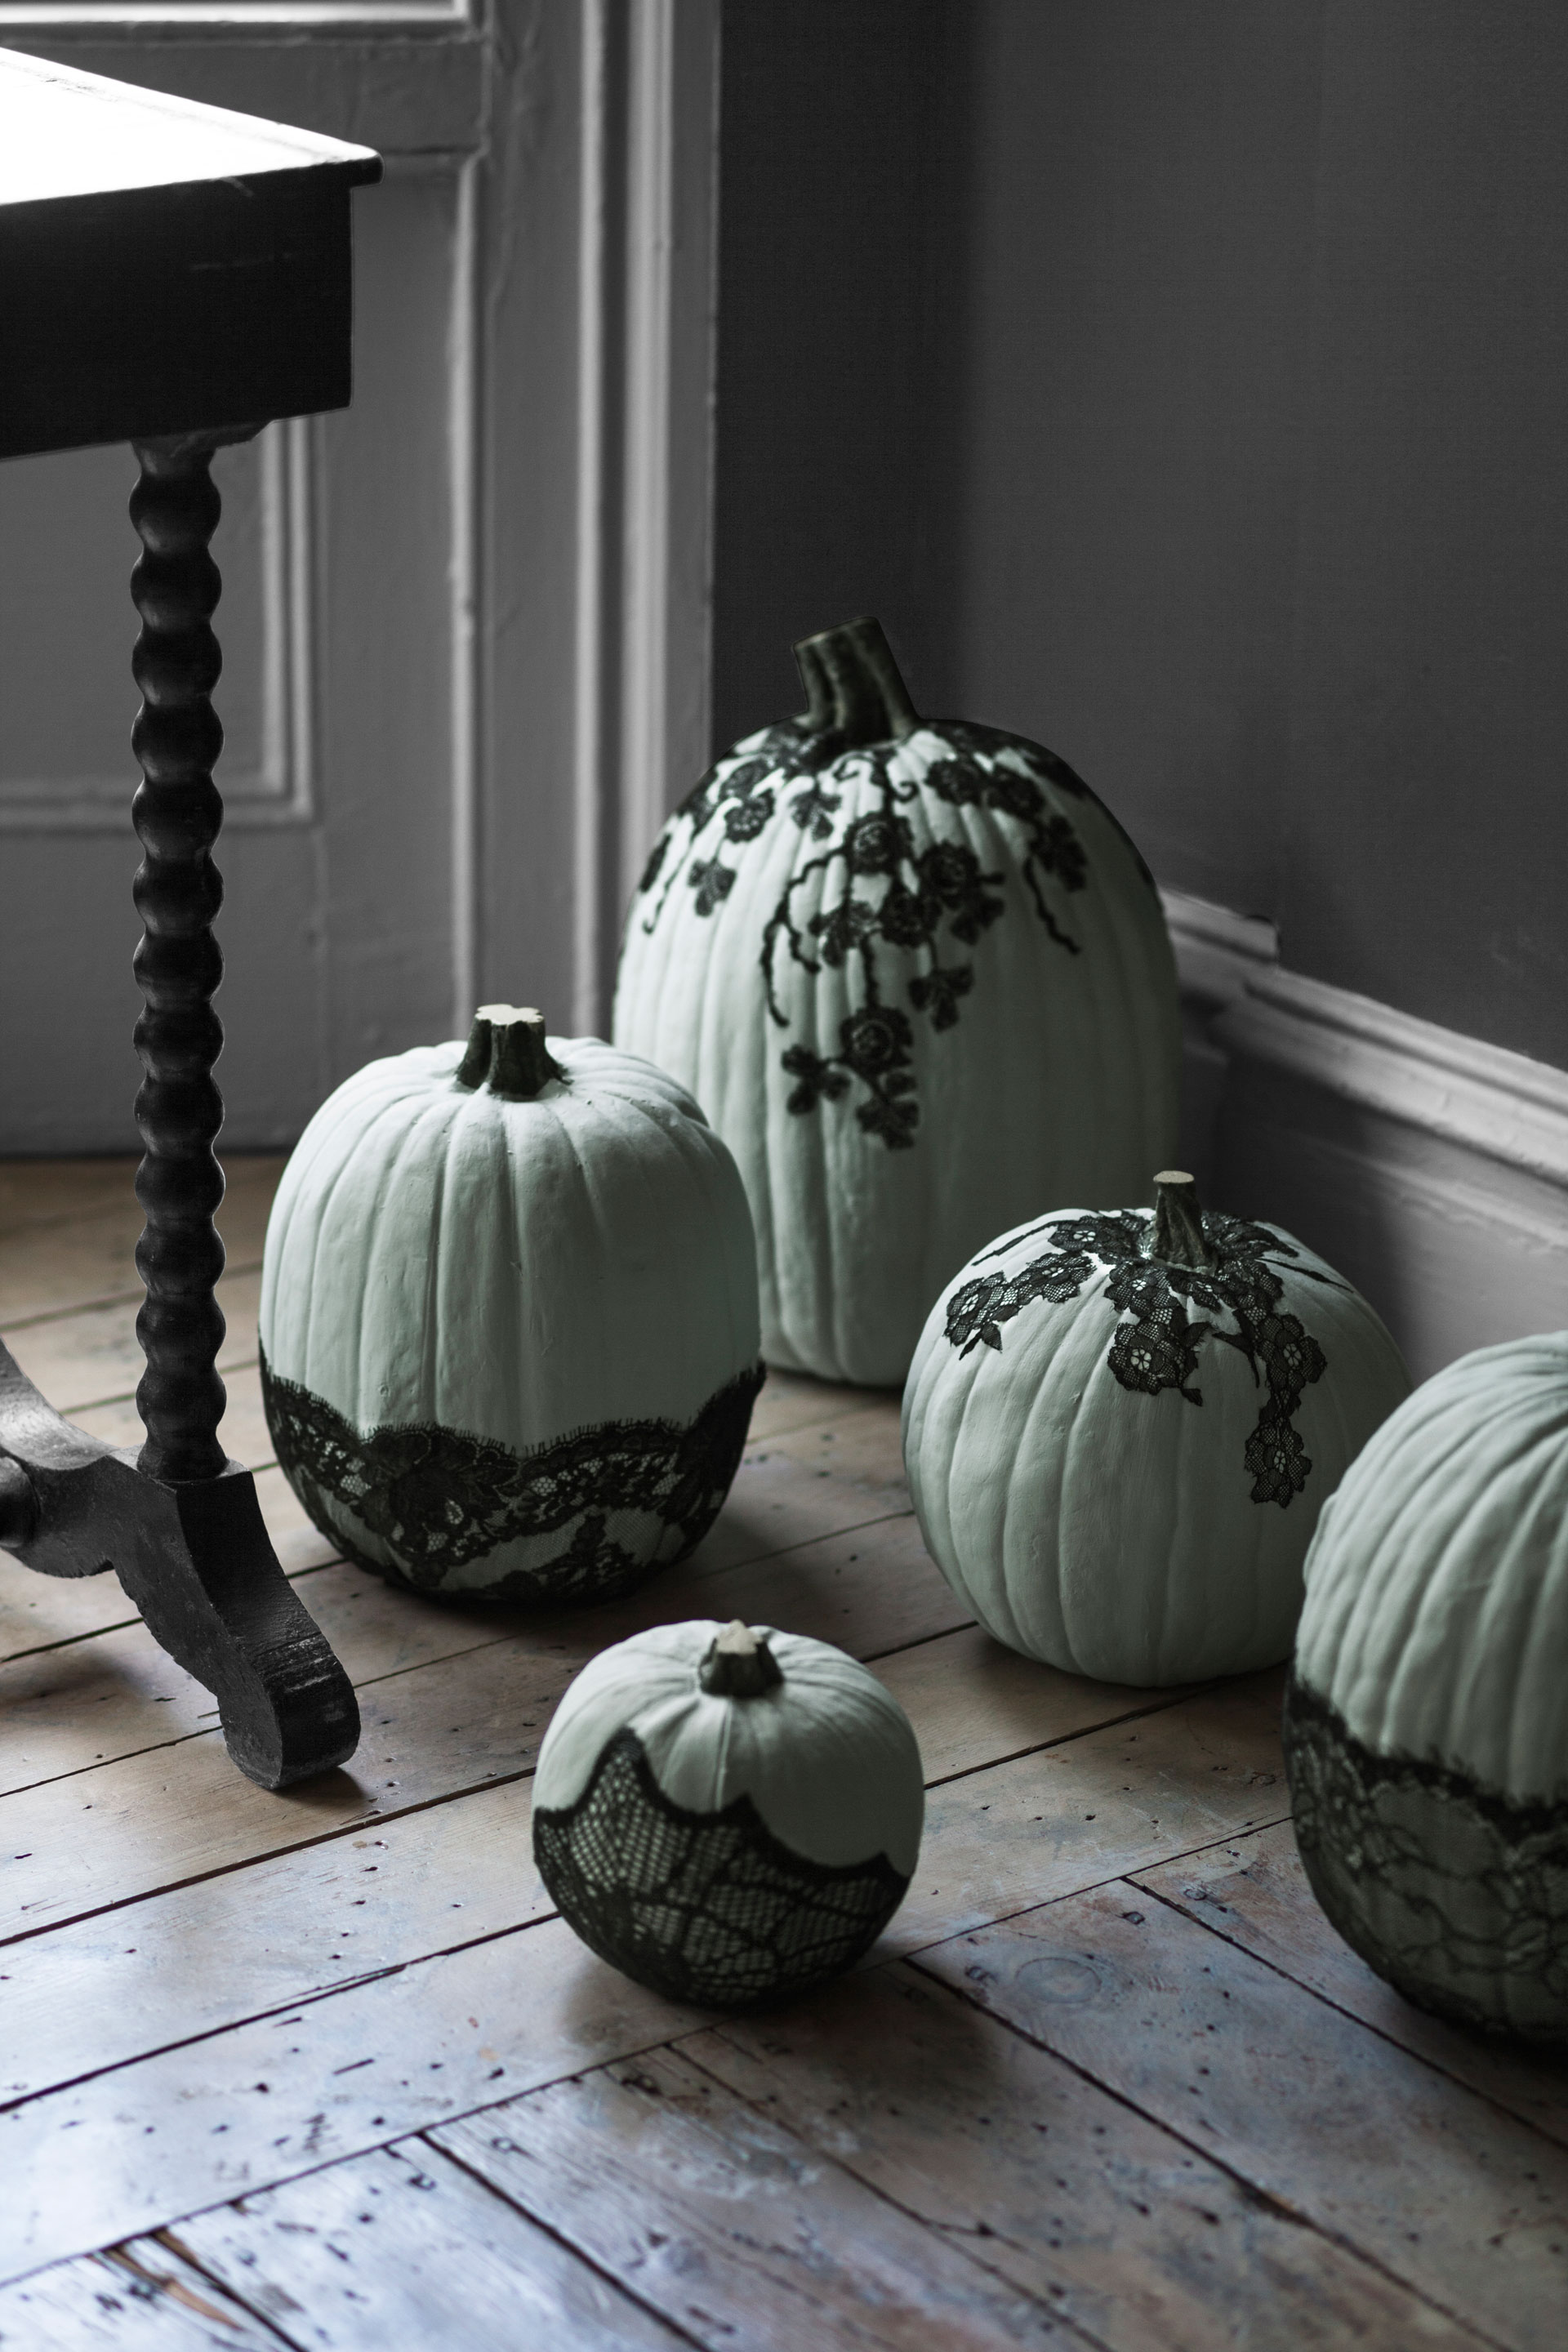 Living Room Decorating With Pictures Ideas 77 cool pumpkin decorating ideas easy halloween decorations and crafts 2016